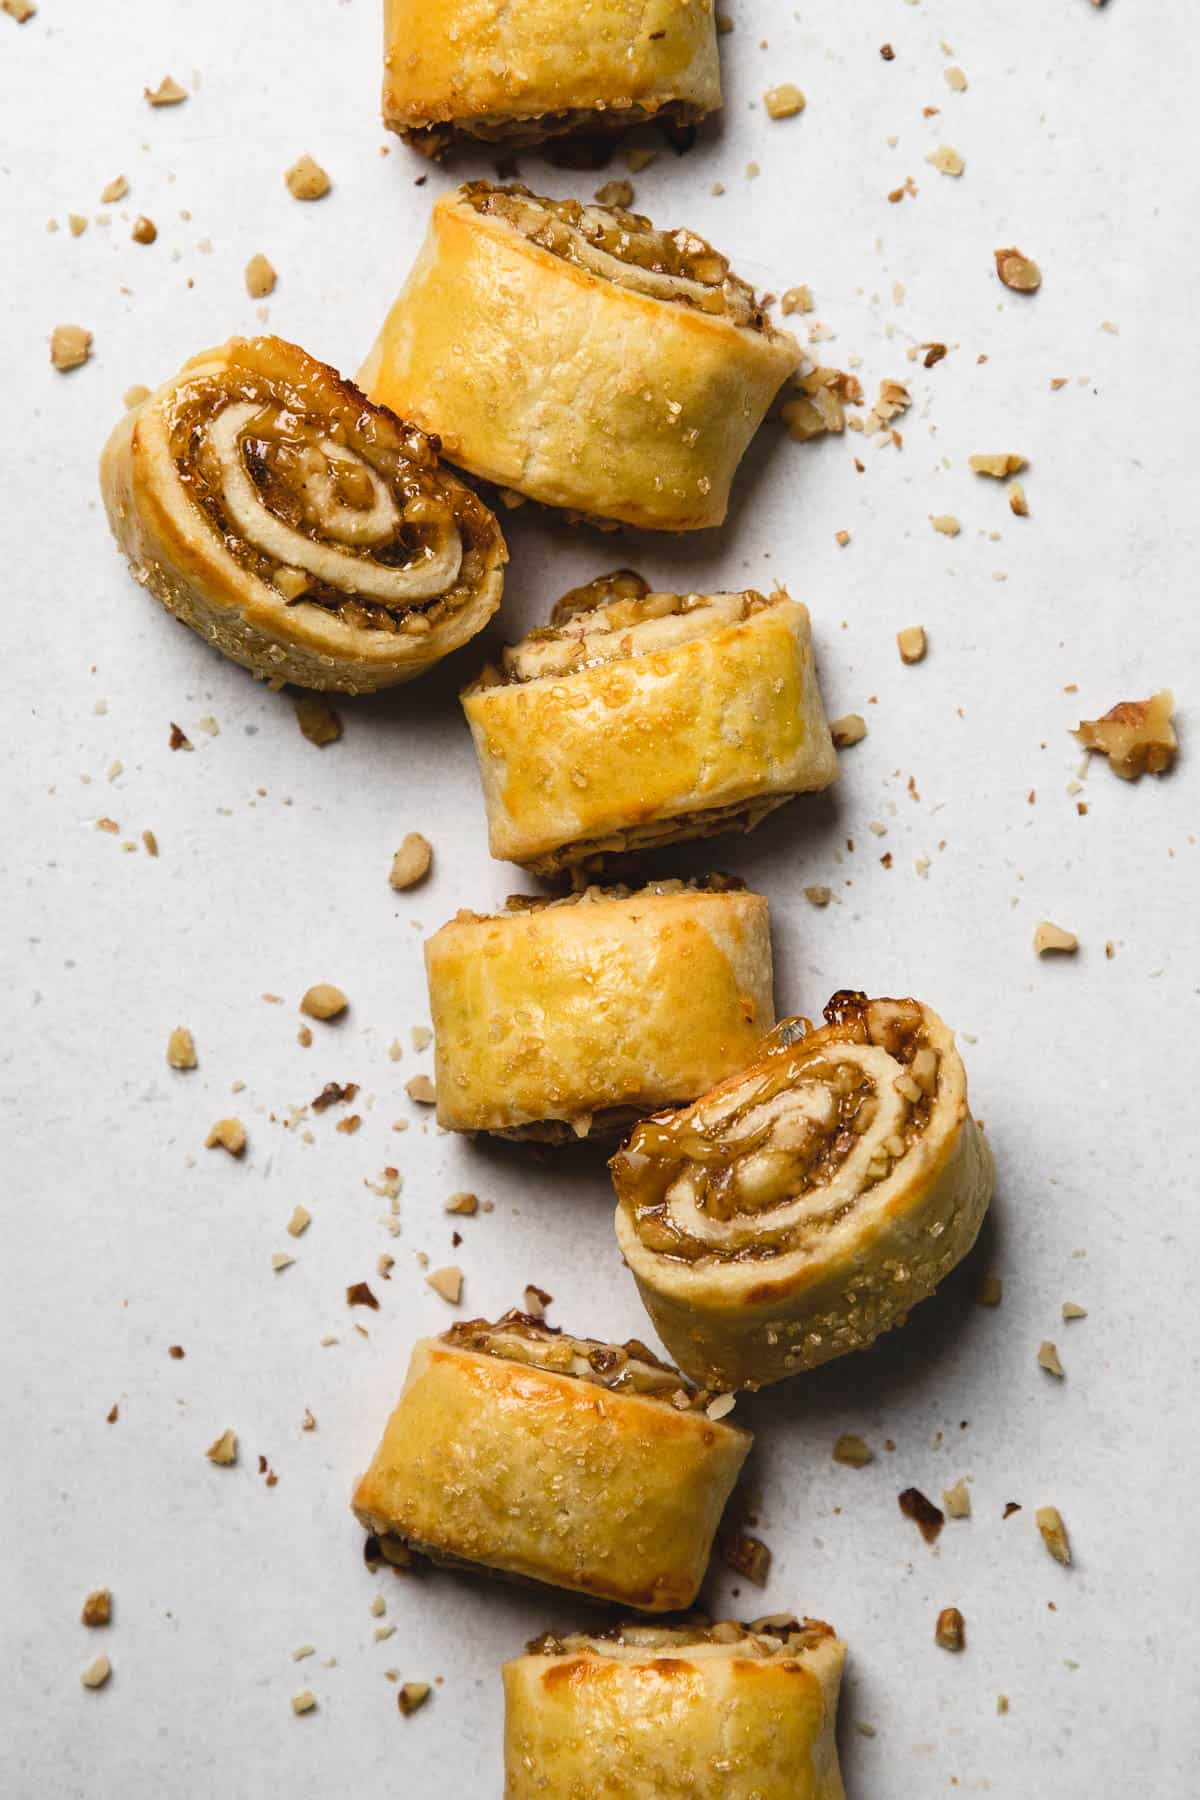 Baked Apricot Rugelach cookies in a line on a table.